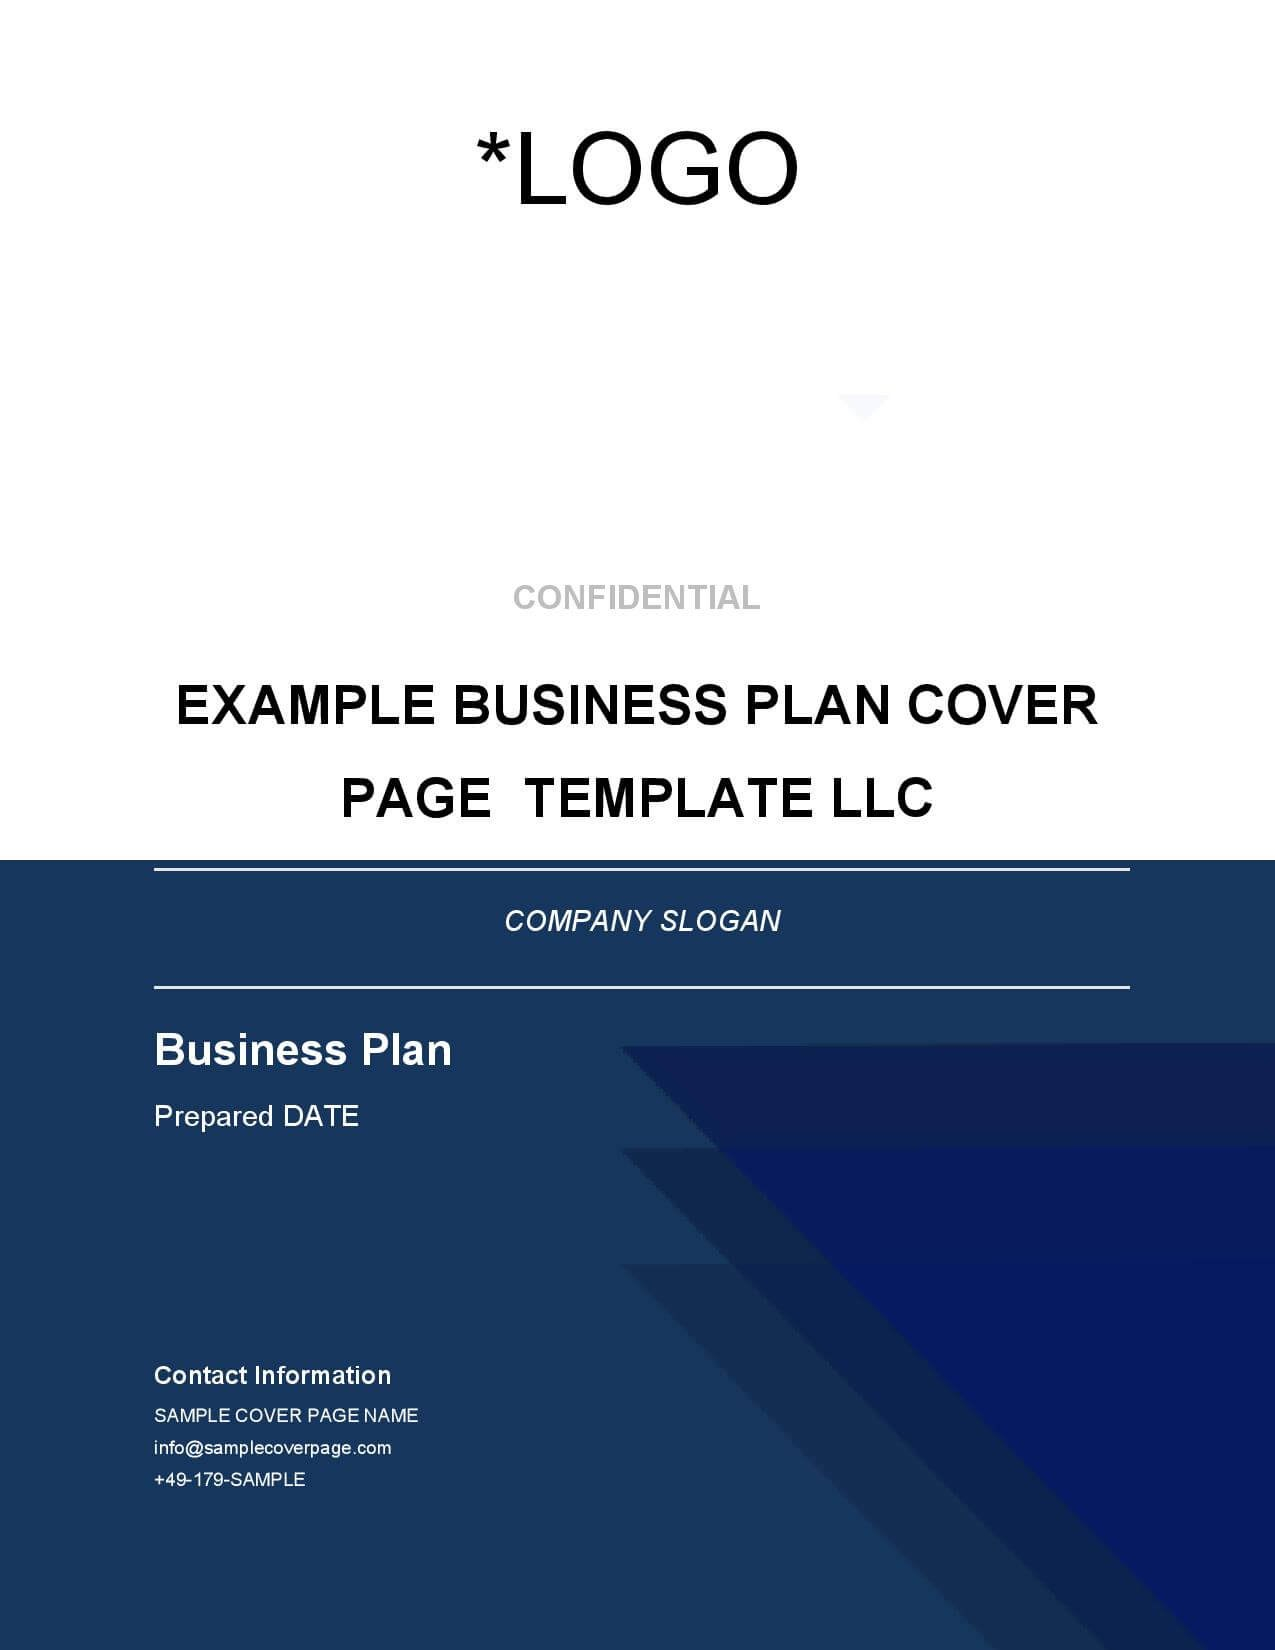 Business Plan Cover Page Template  Brainhive Business Planning With Regard To Business Plan Cover Page Template